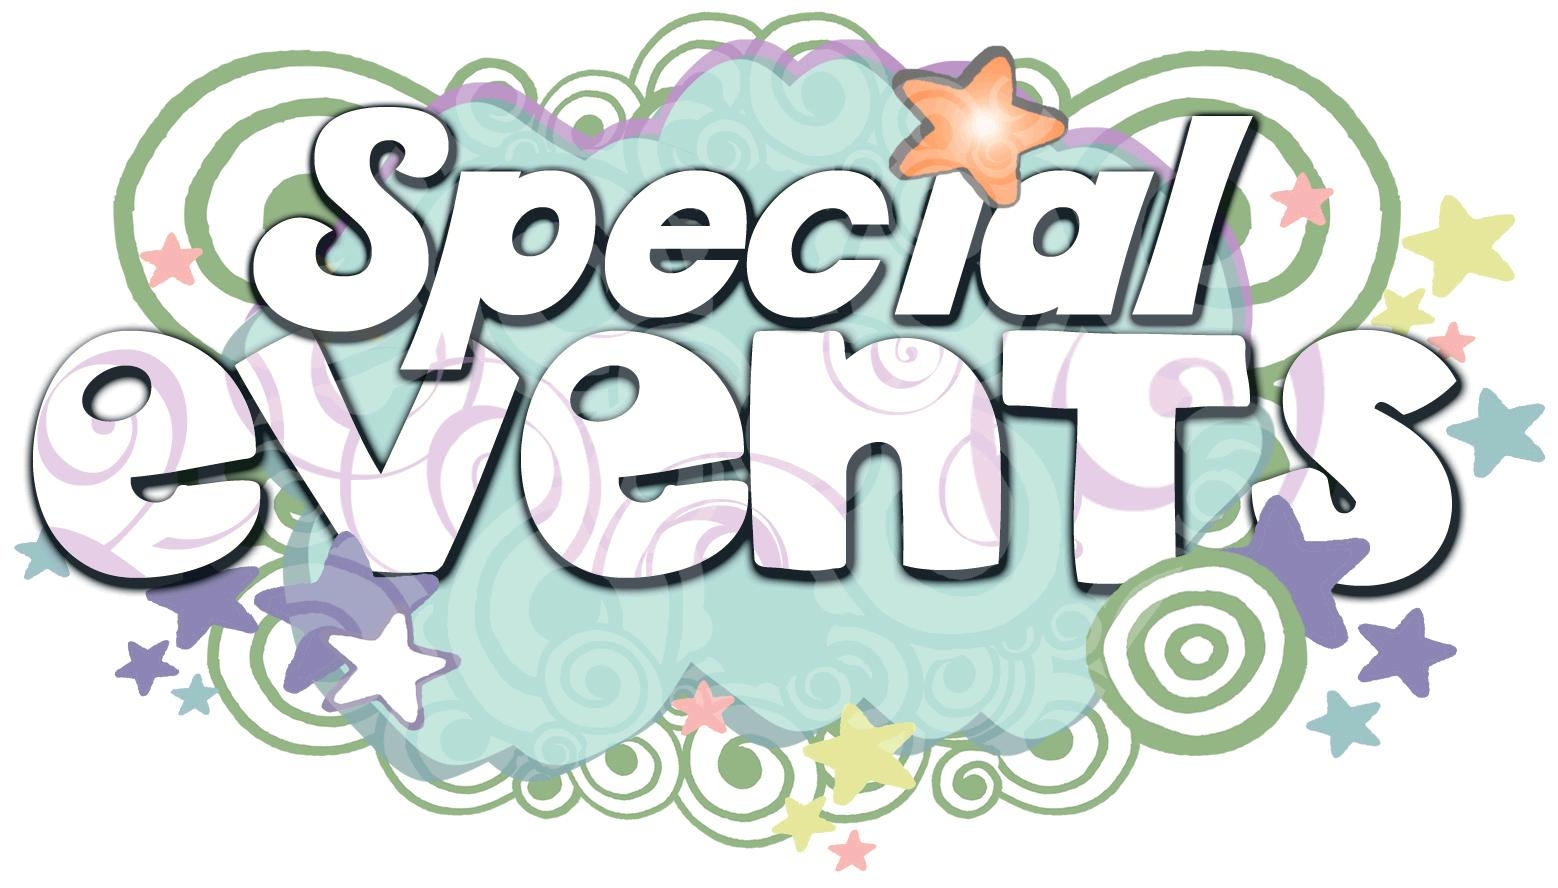 January clipart end. Free school events cliparts